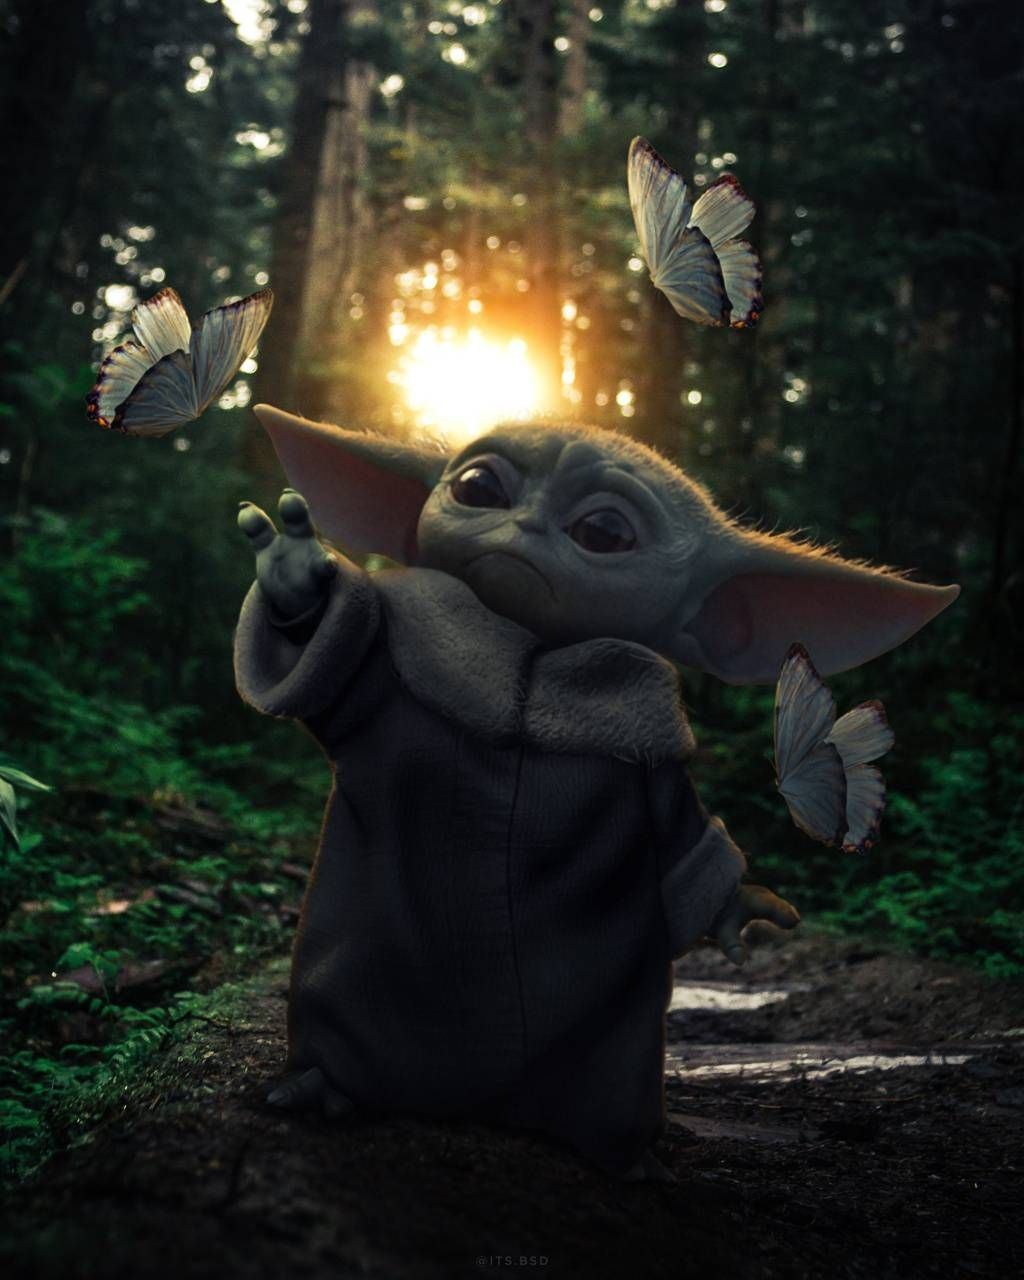 Baby Yoda Wallpaper by itsbsd 51 Free on ZEDGE™ in 2020